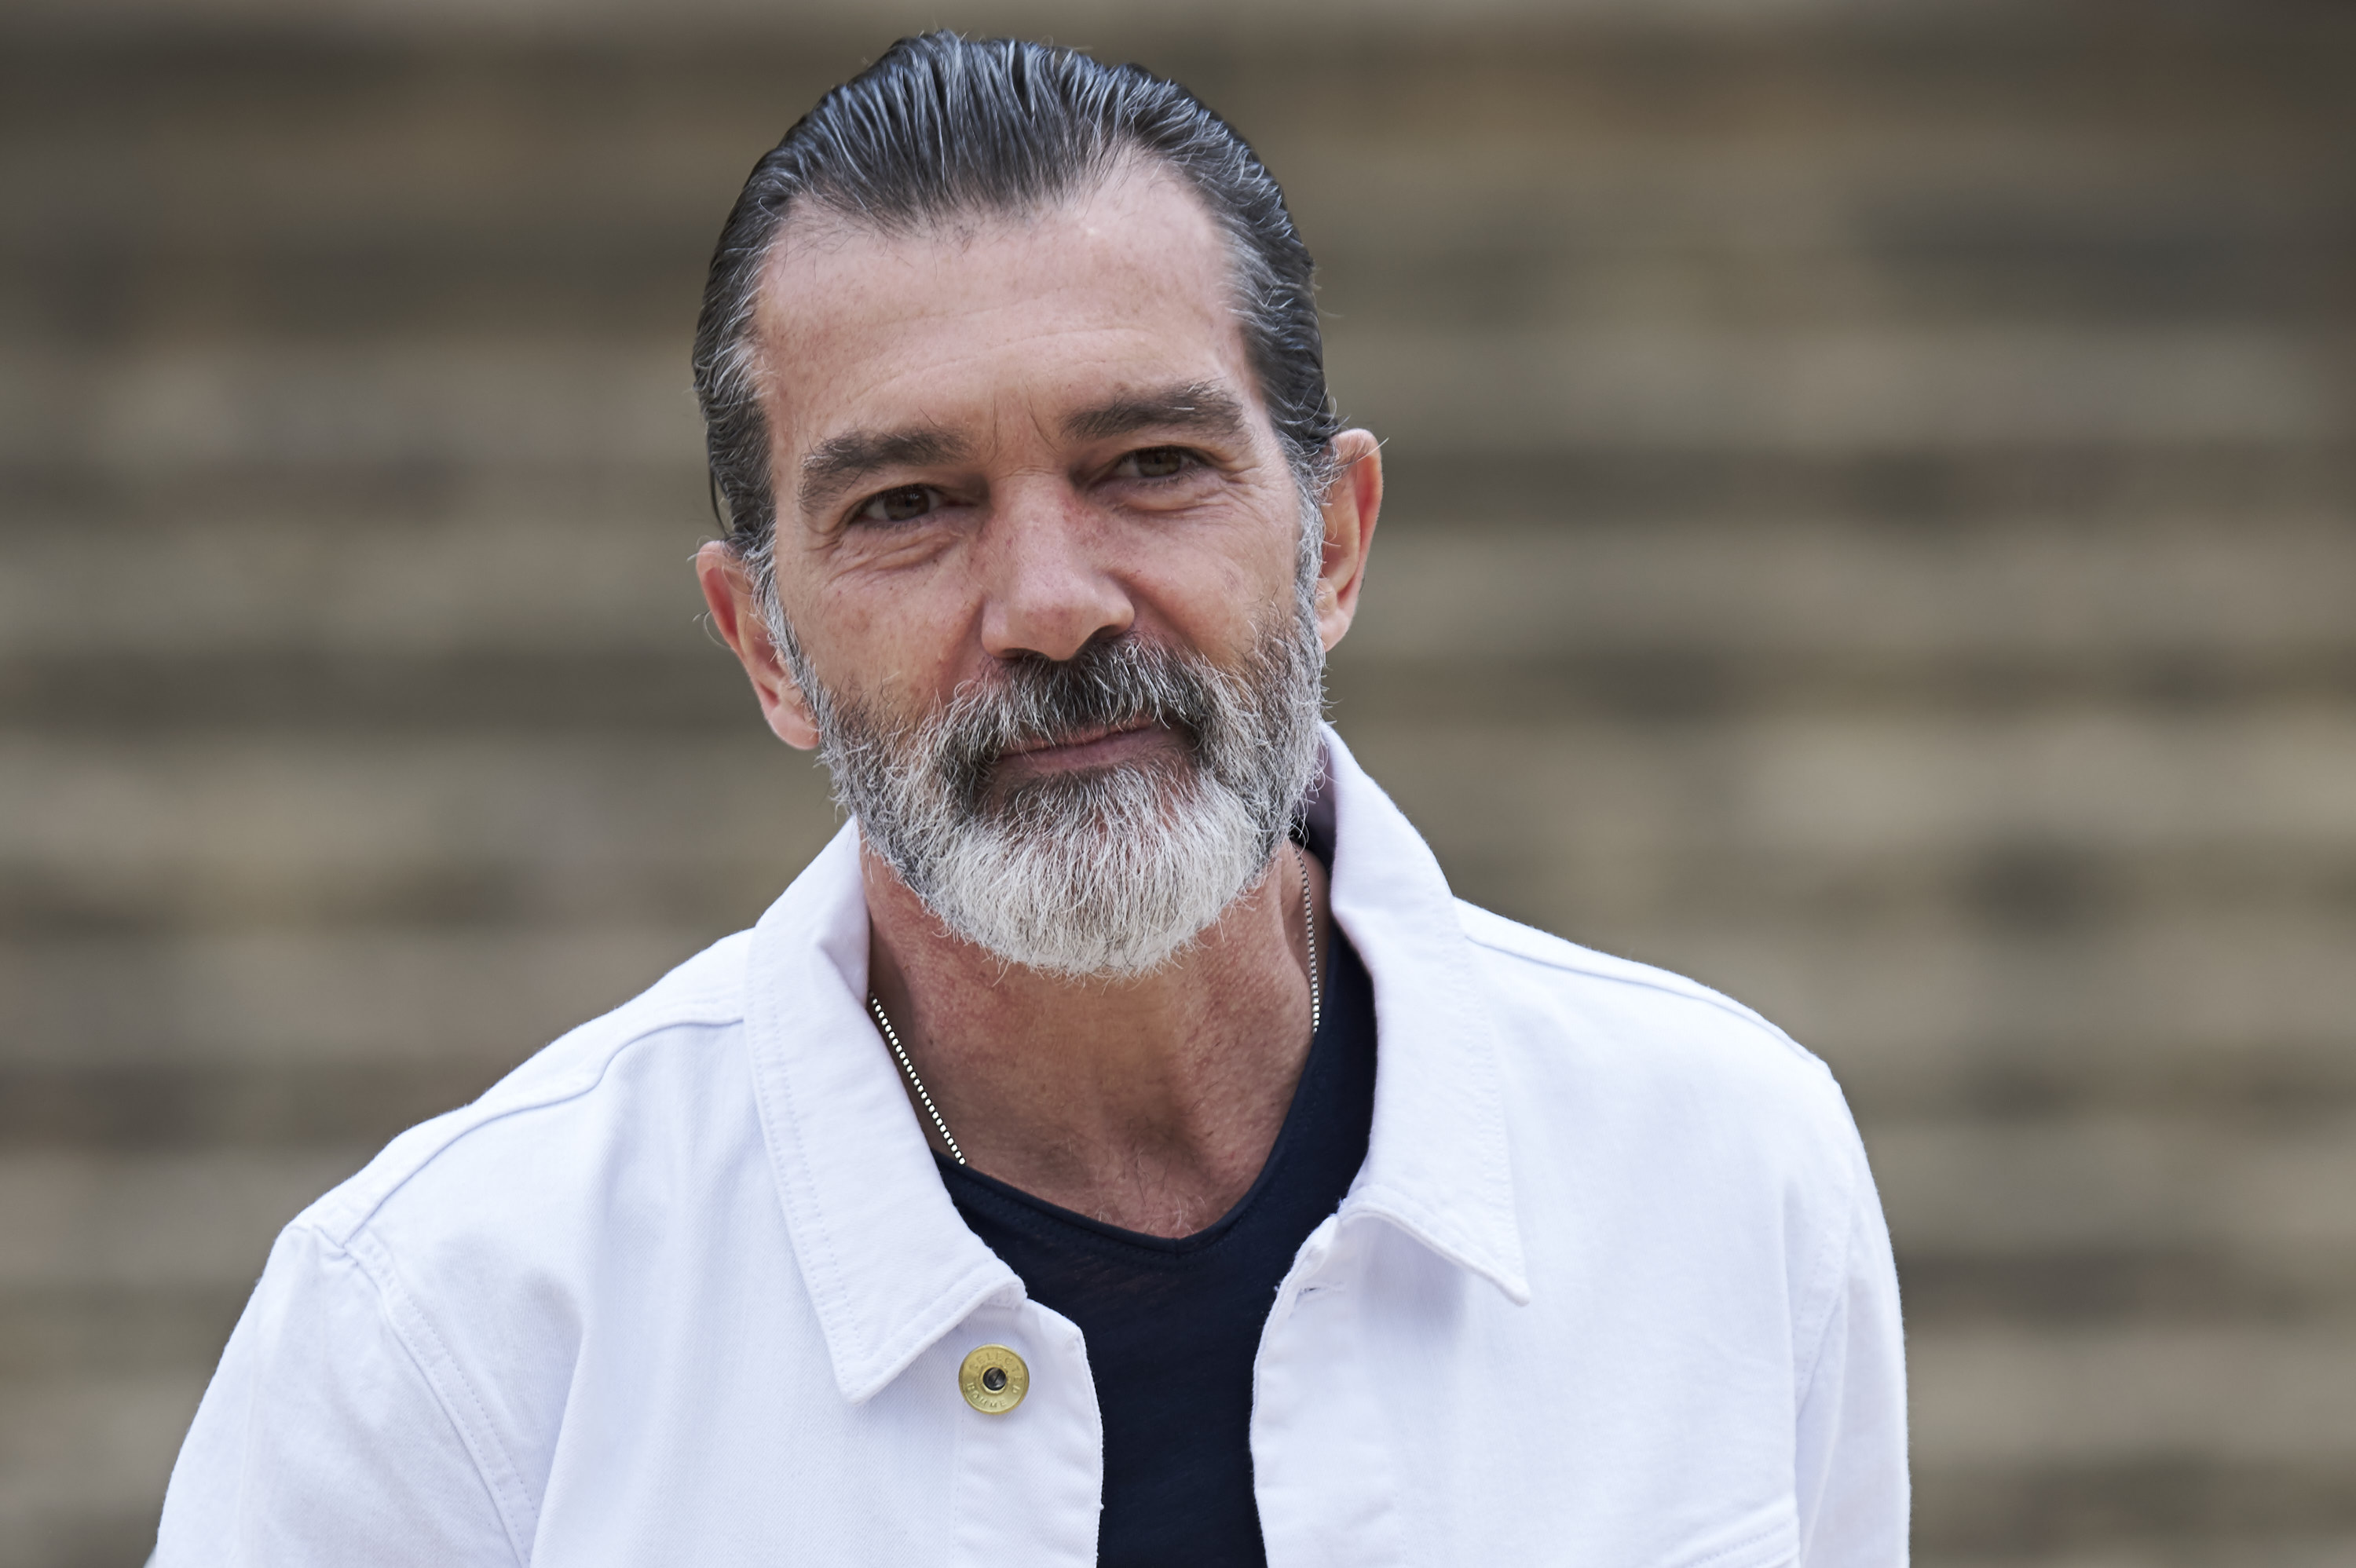 Antonio Banderas Recovered From Heart Attack | WFMYNEWS2.com